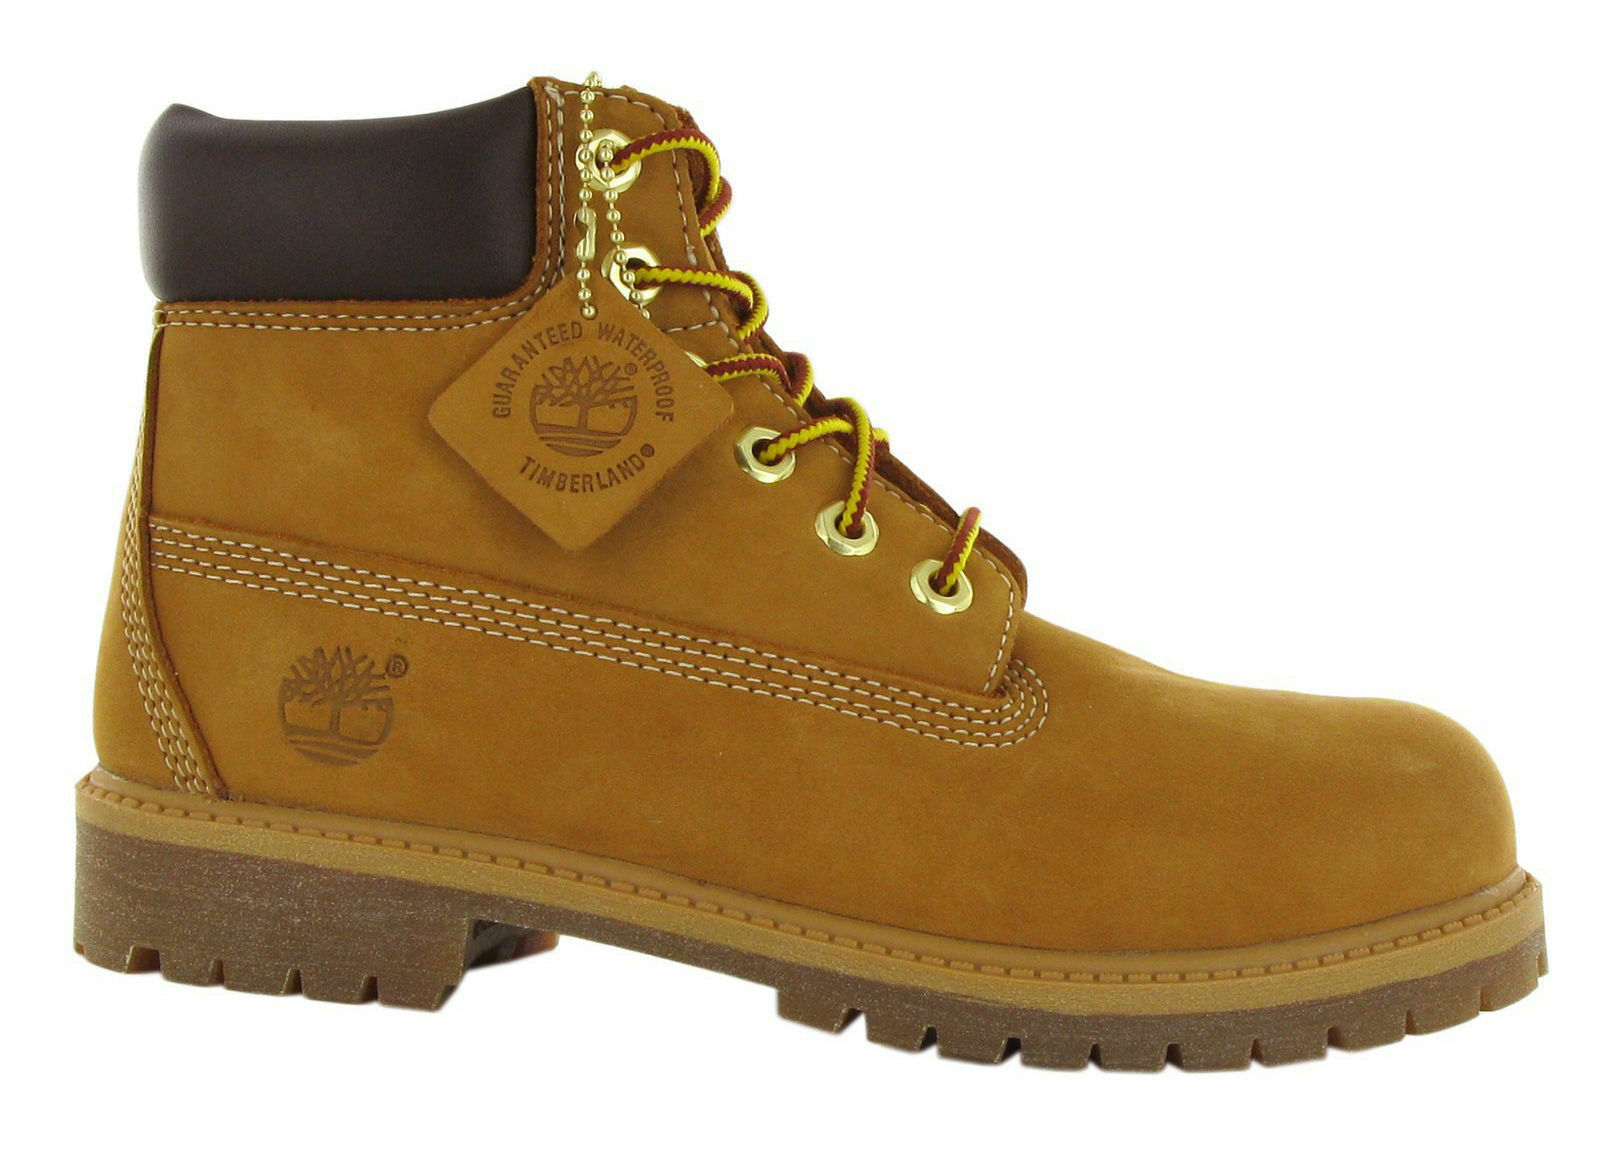 Timberland Boys' Boots for sale | eBay